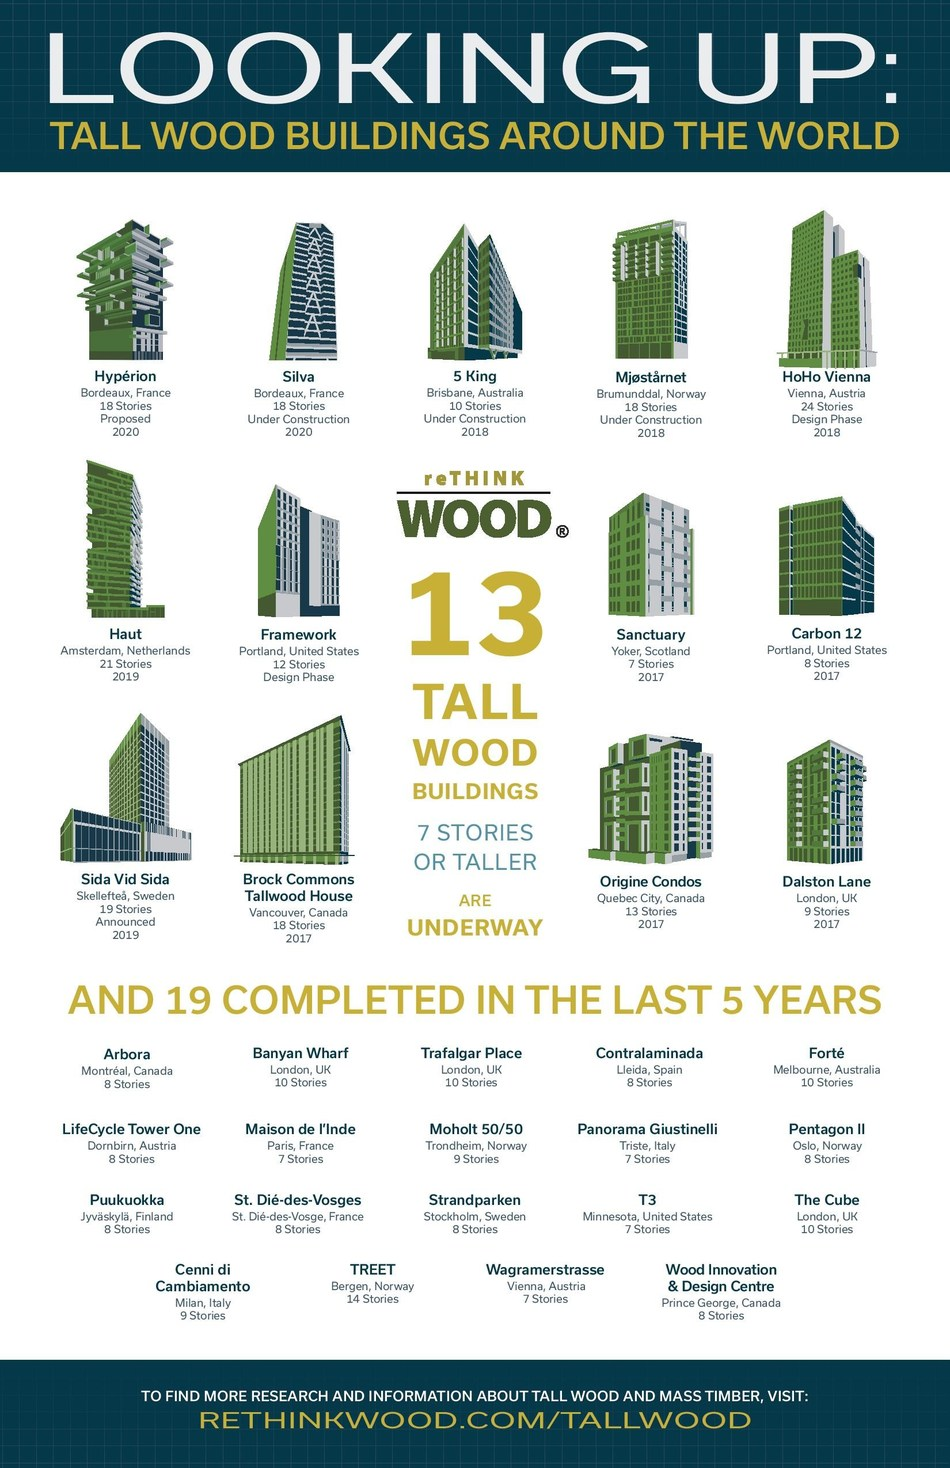 Nineteen tall wood buildings (seven stories or taller) have been completed in the last five years.